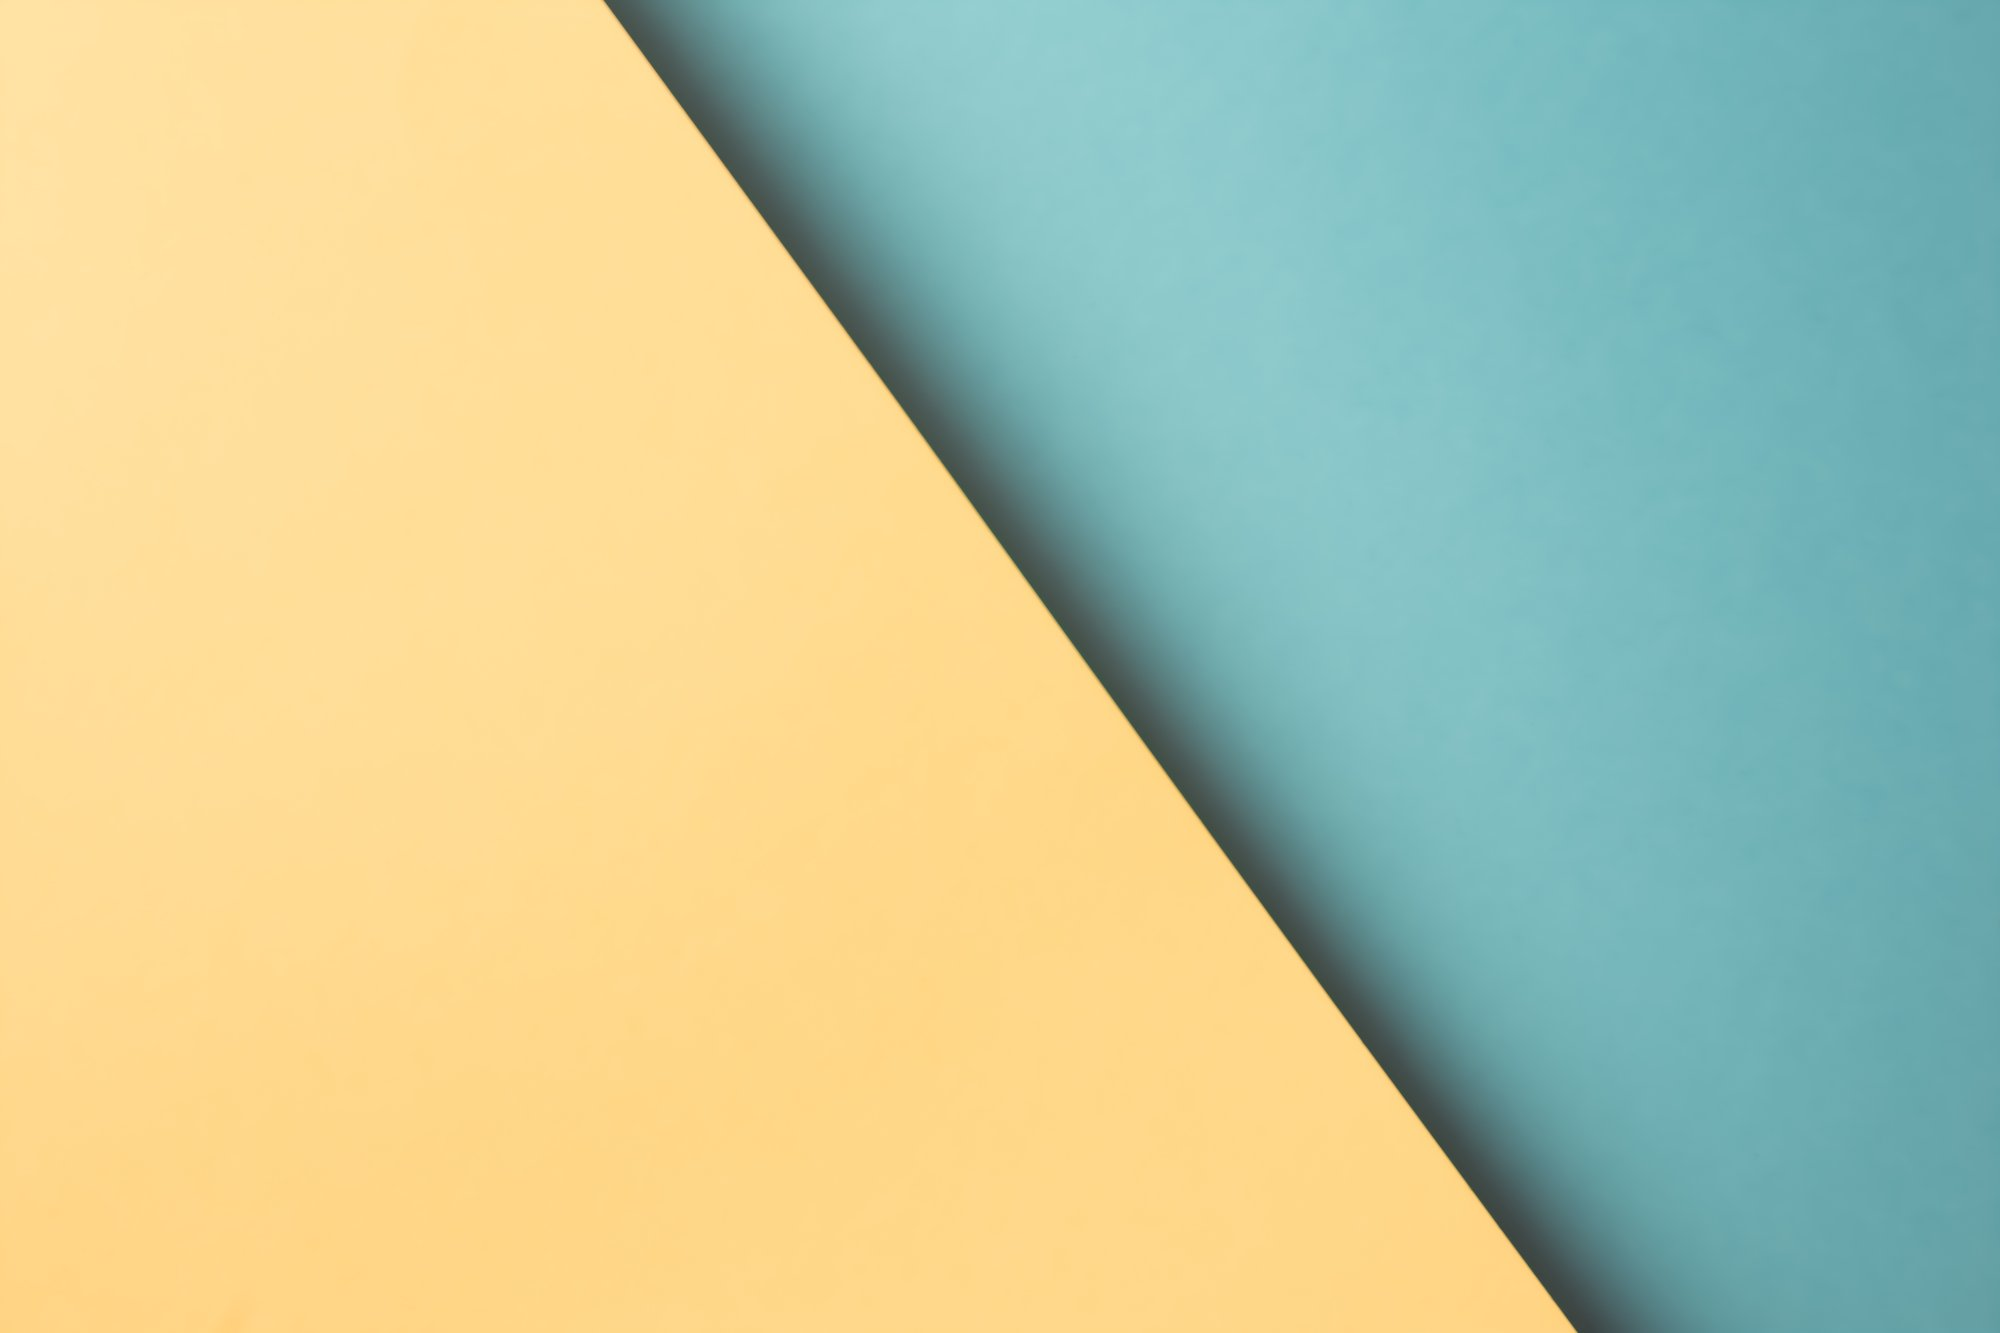 yellow and blue patterned paper background 黄色和蓝色图案纸背景